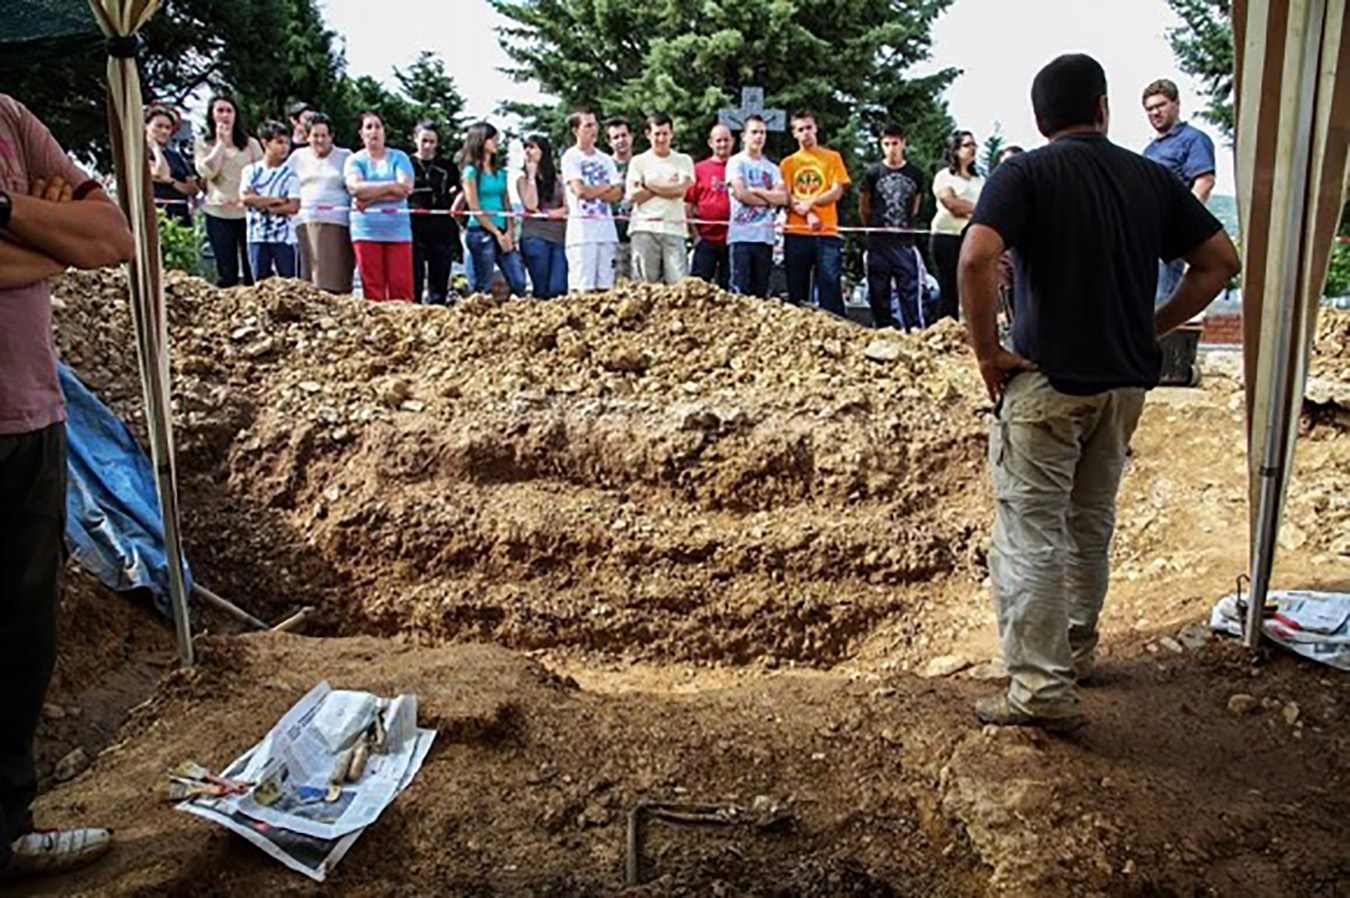 Exhumation teams established distinct zones for families and visitors to watch ongoing forensic activities, along with discussion spaces and interviewing areas (not pictured). Photo by Óscar Rodríguez, 2011.